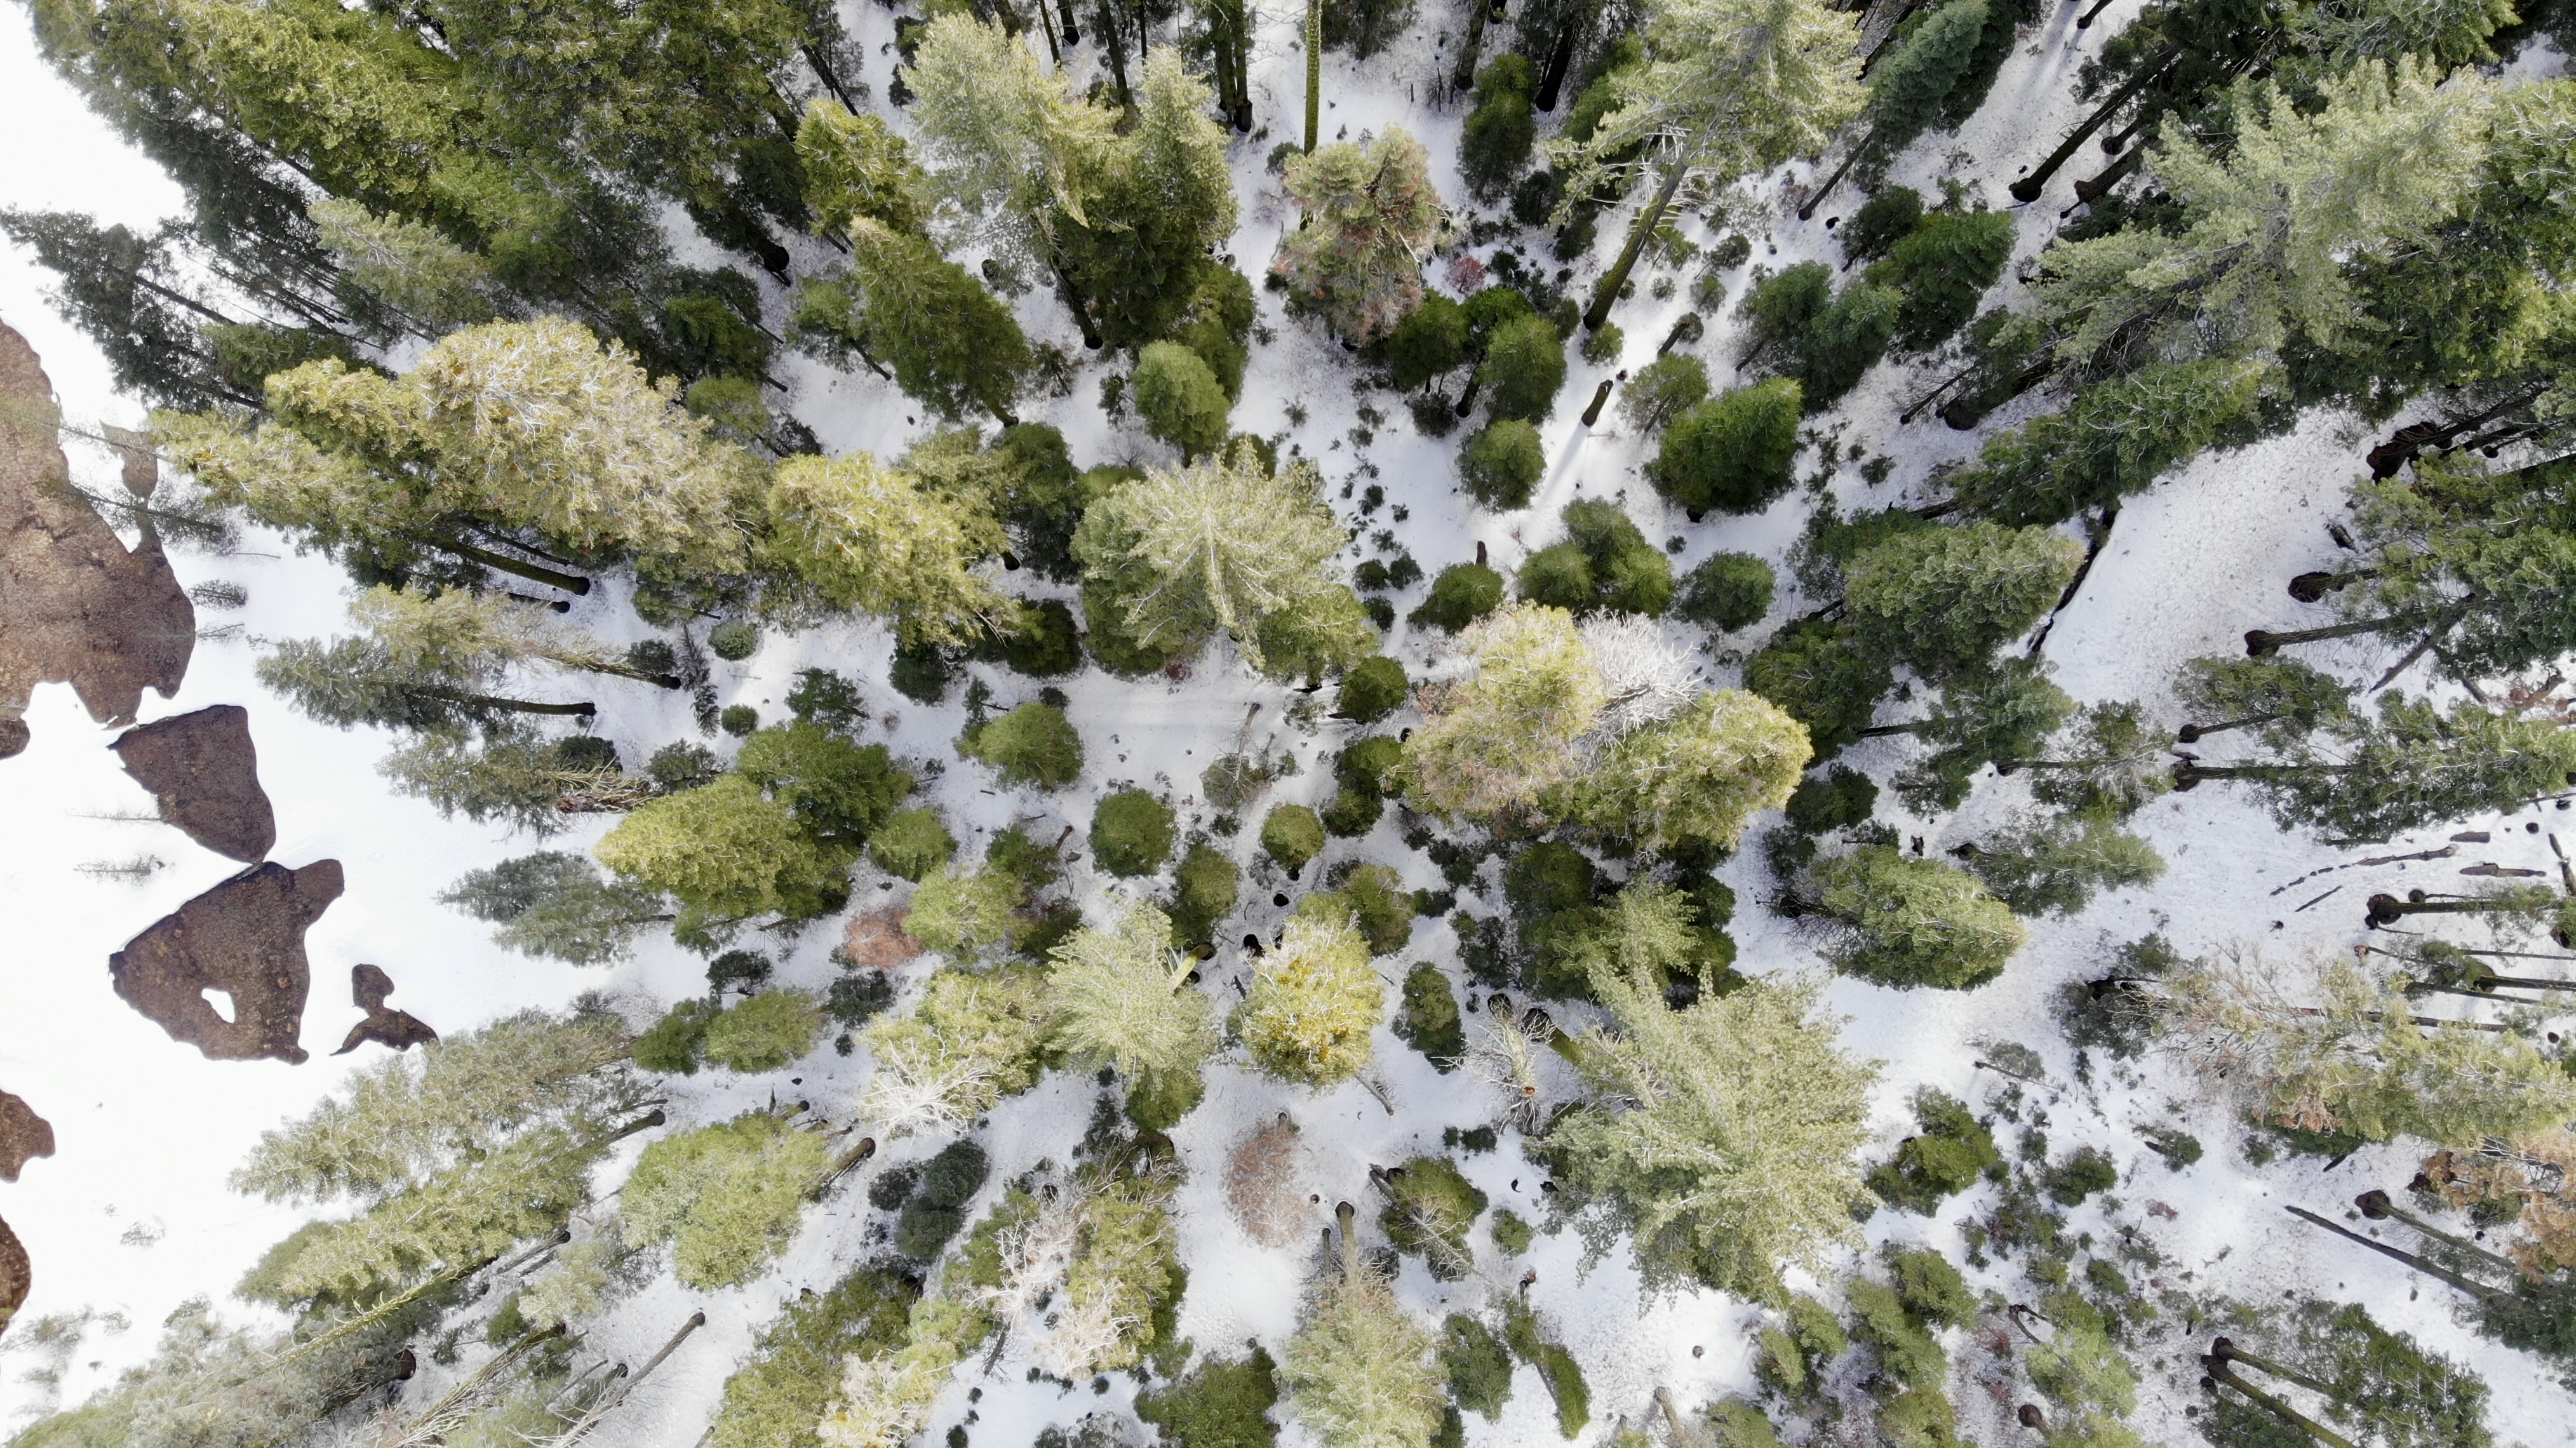 bird's eye view of tall trees on snow coated ground